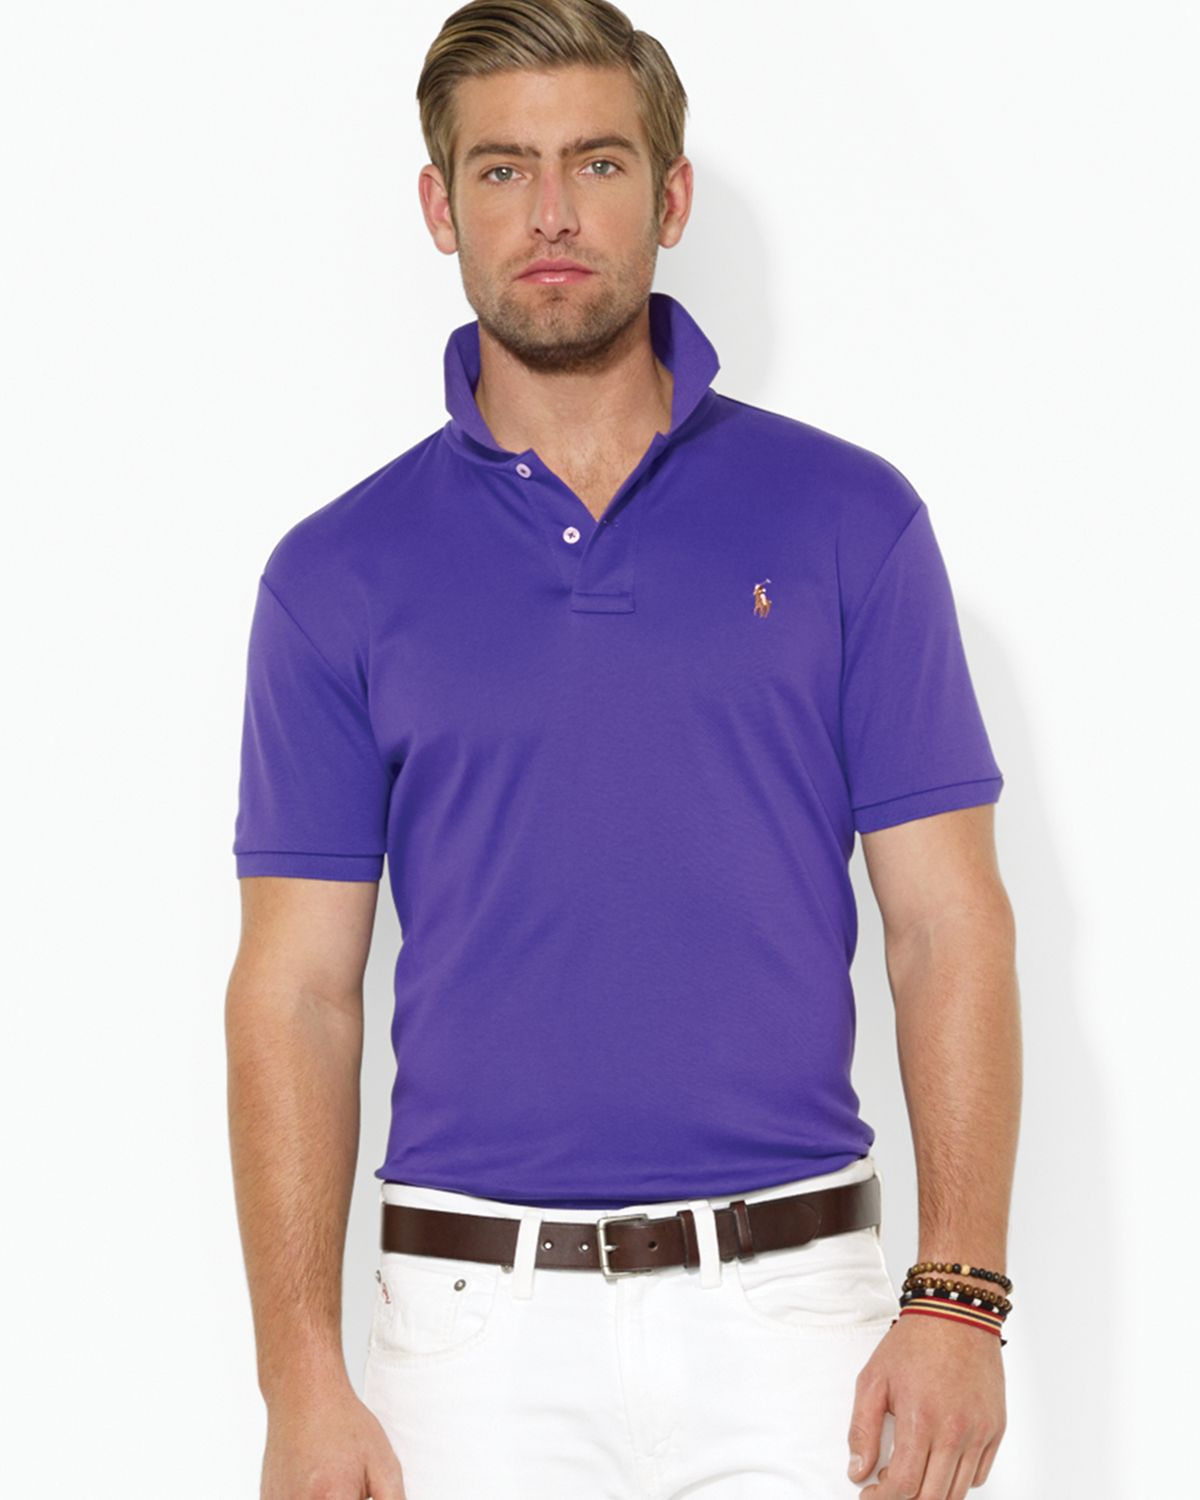 fdc3a861 Ralph Lauren Pima Soft Touch Regular Fit Polo in Purple for Men - Lyst